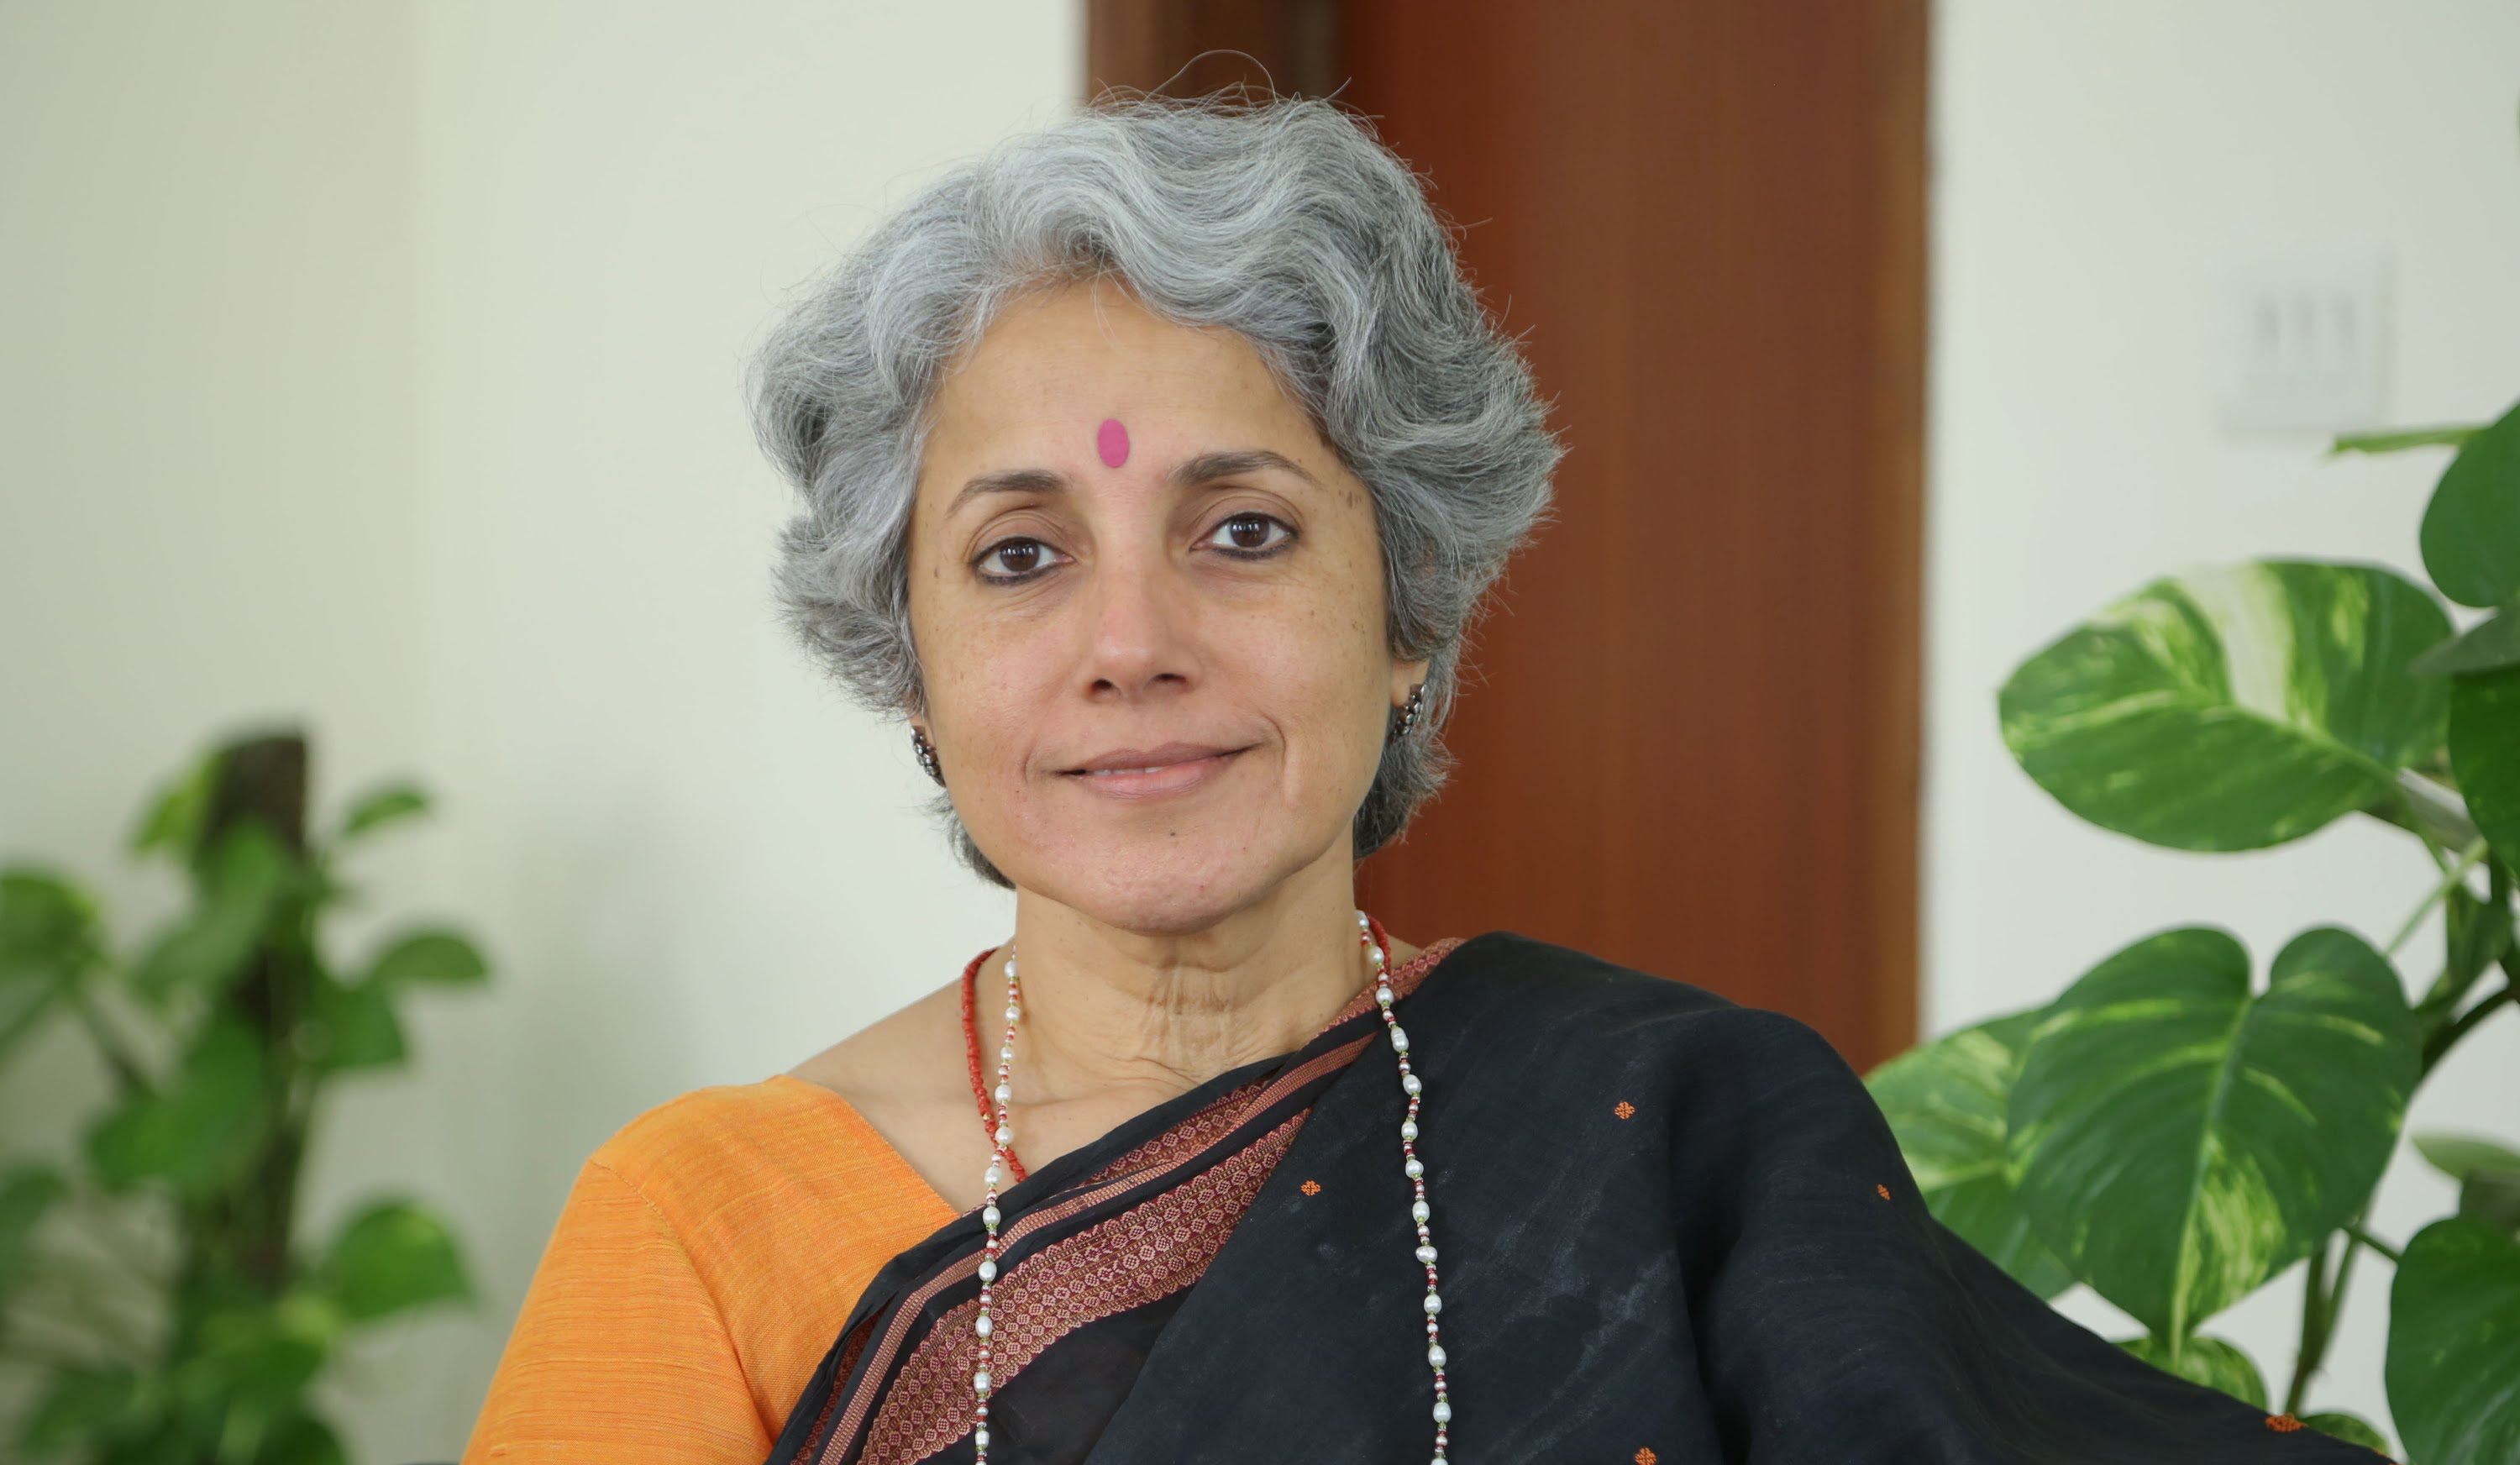 India's Soumya Swaminathan Is Now Second in Command at WHO